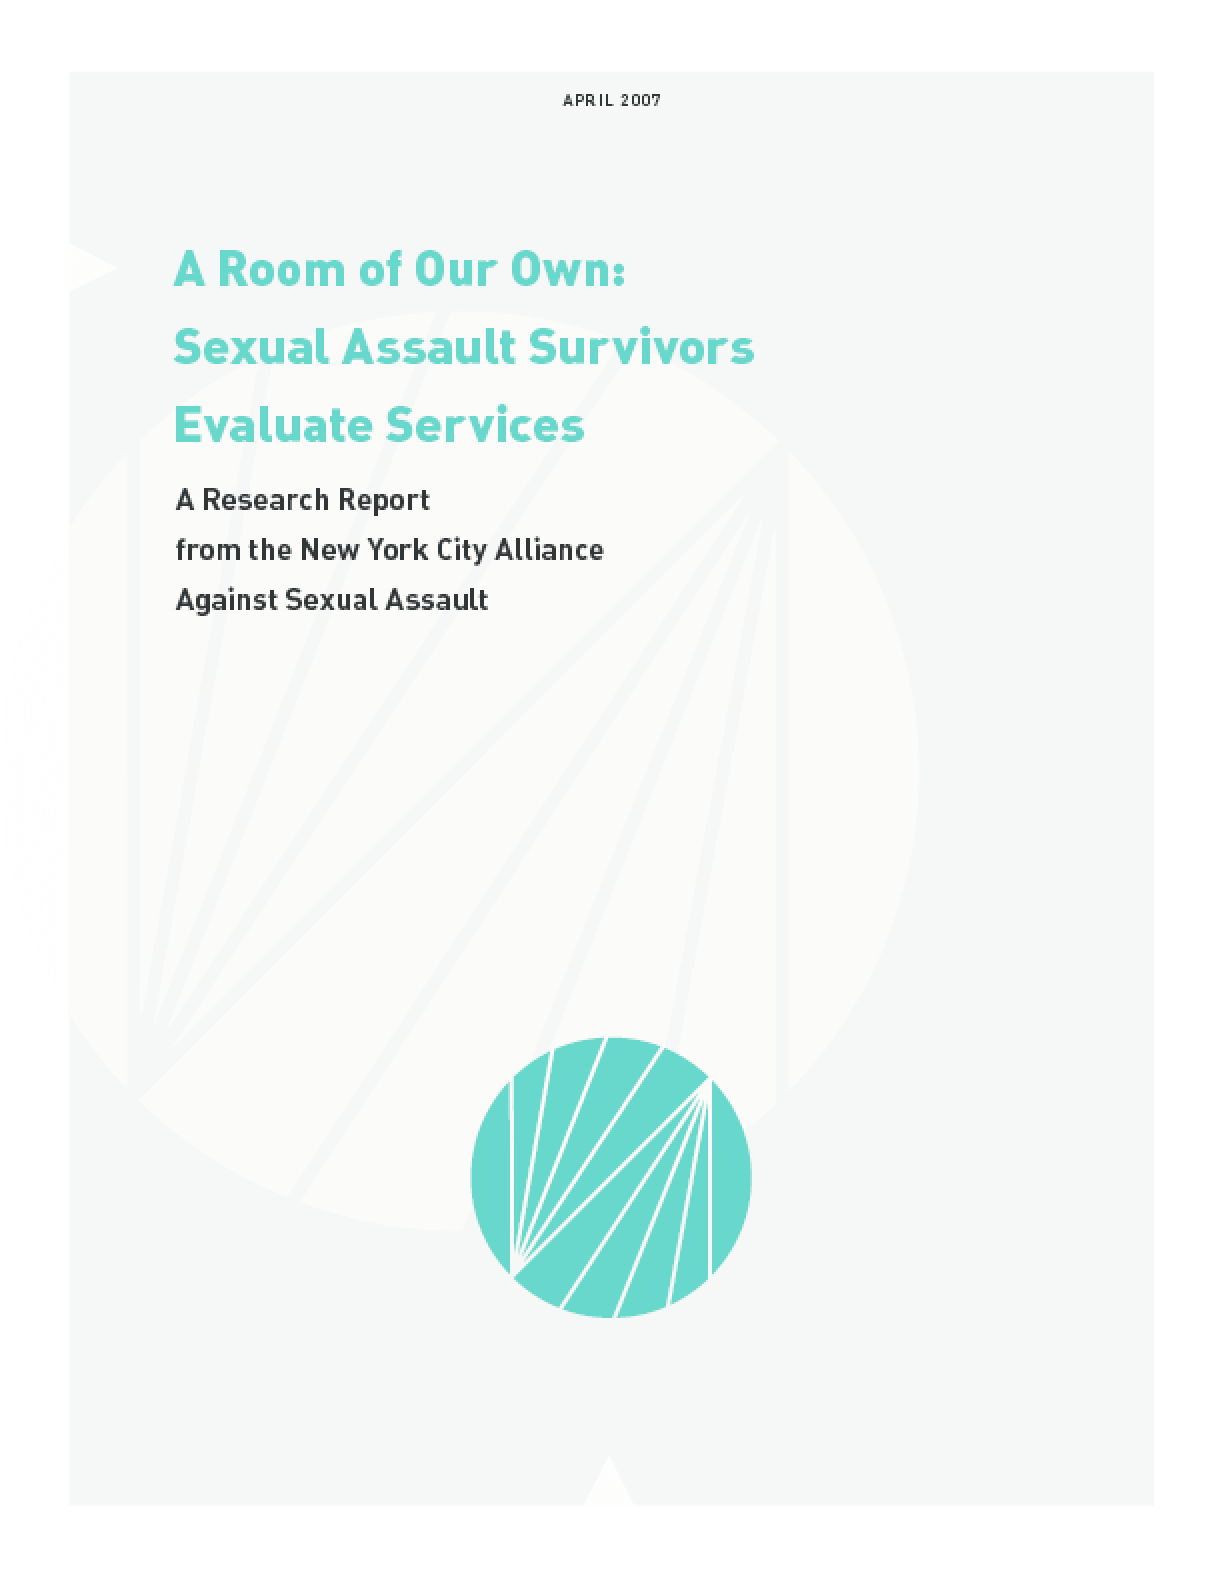 A Room of Our Own: Sexual Assault Survivors Evaluate Services